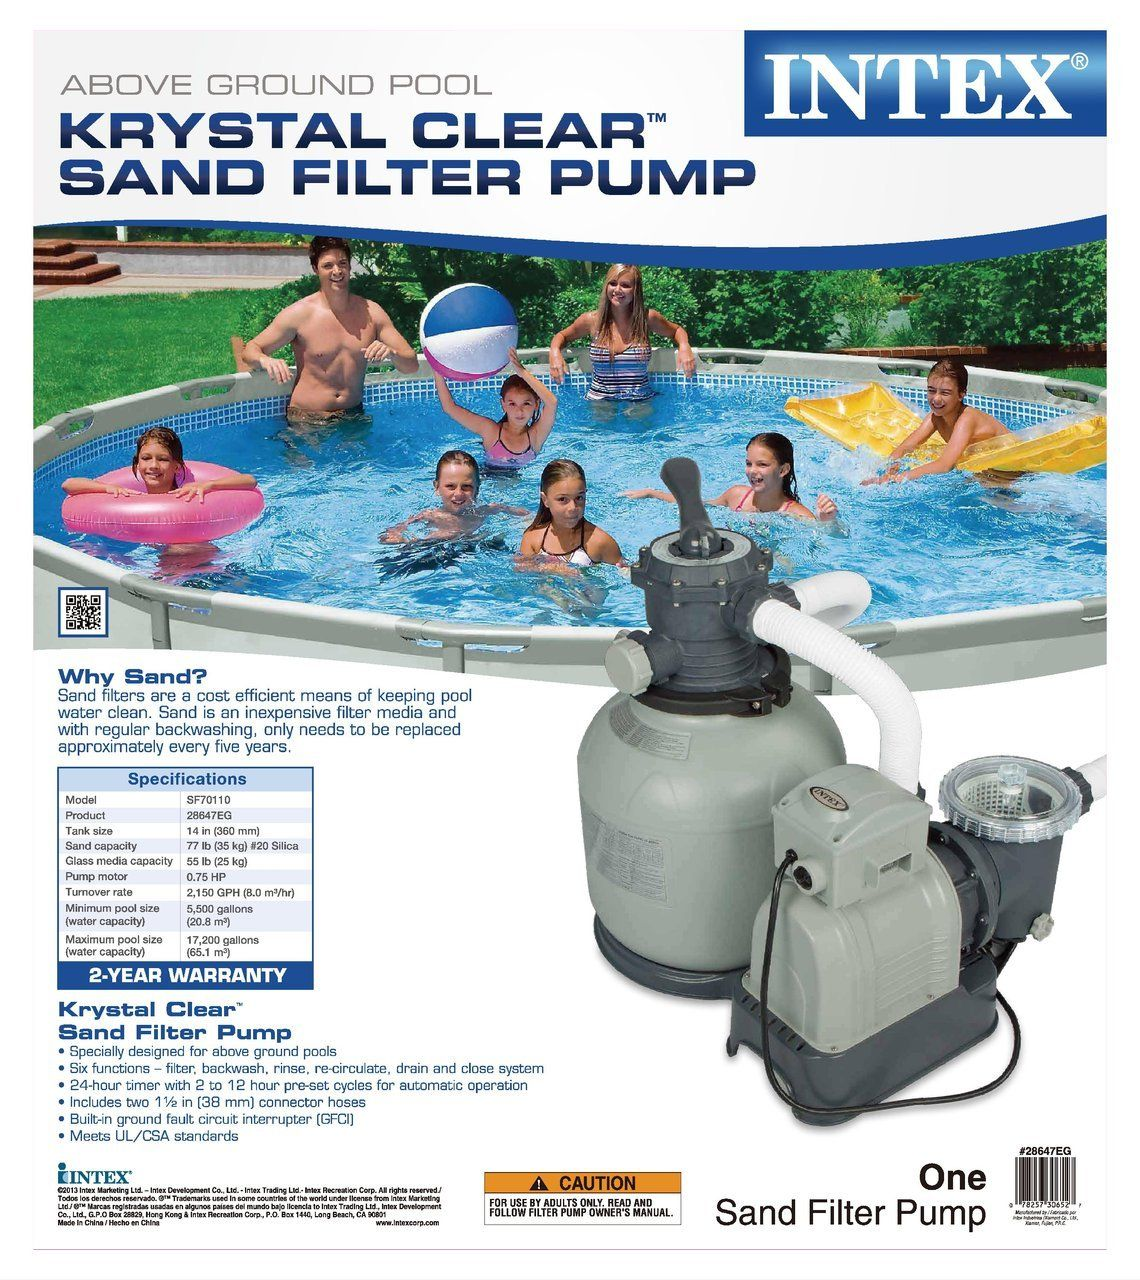 Intex Krystal Clear 2800 Gph Above Ground Swimming Pool Sand Filter